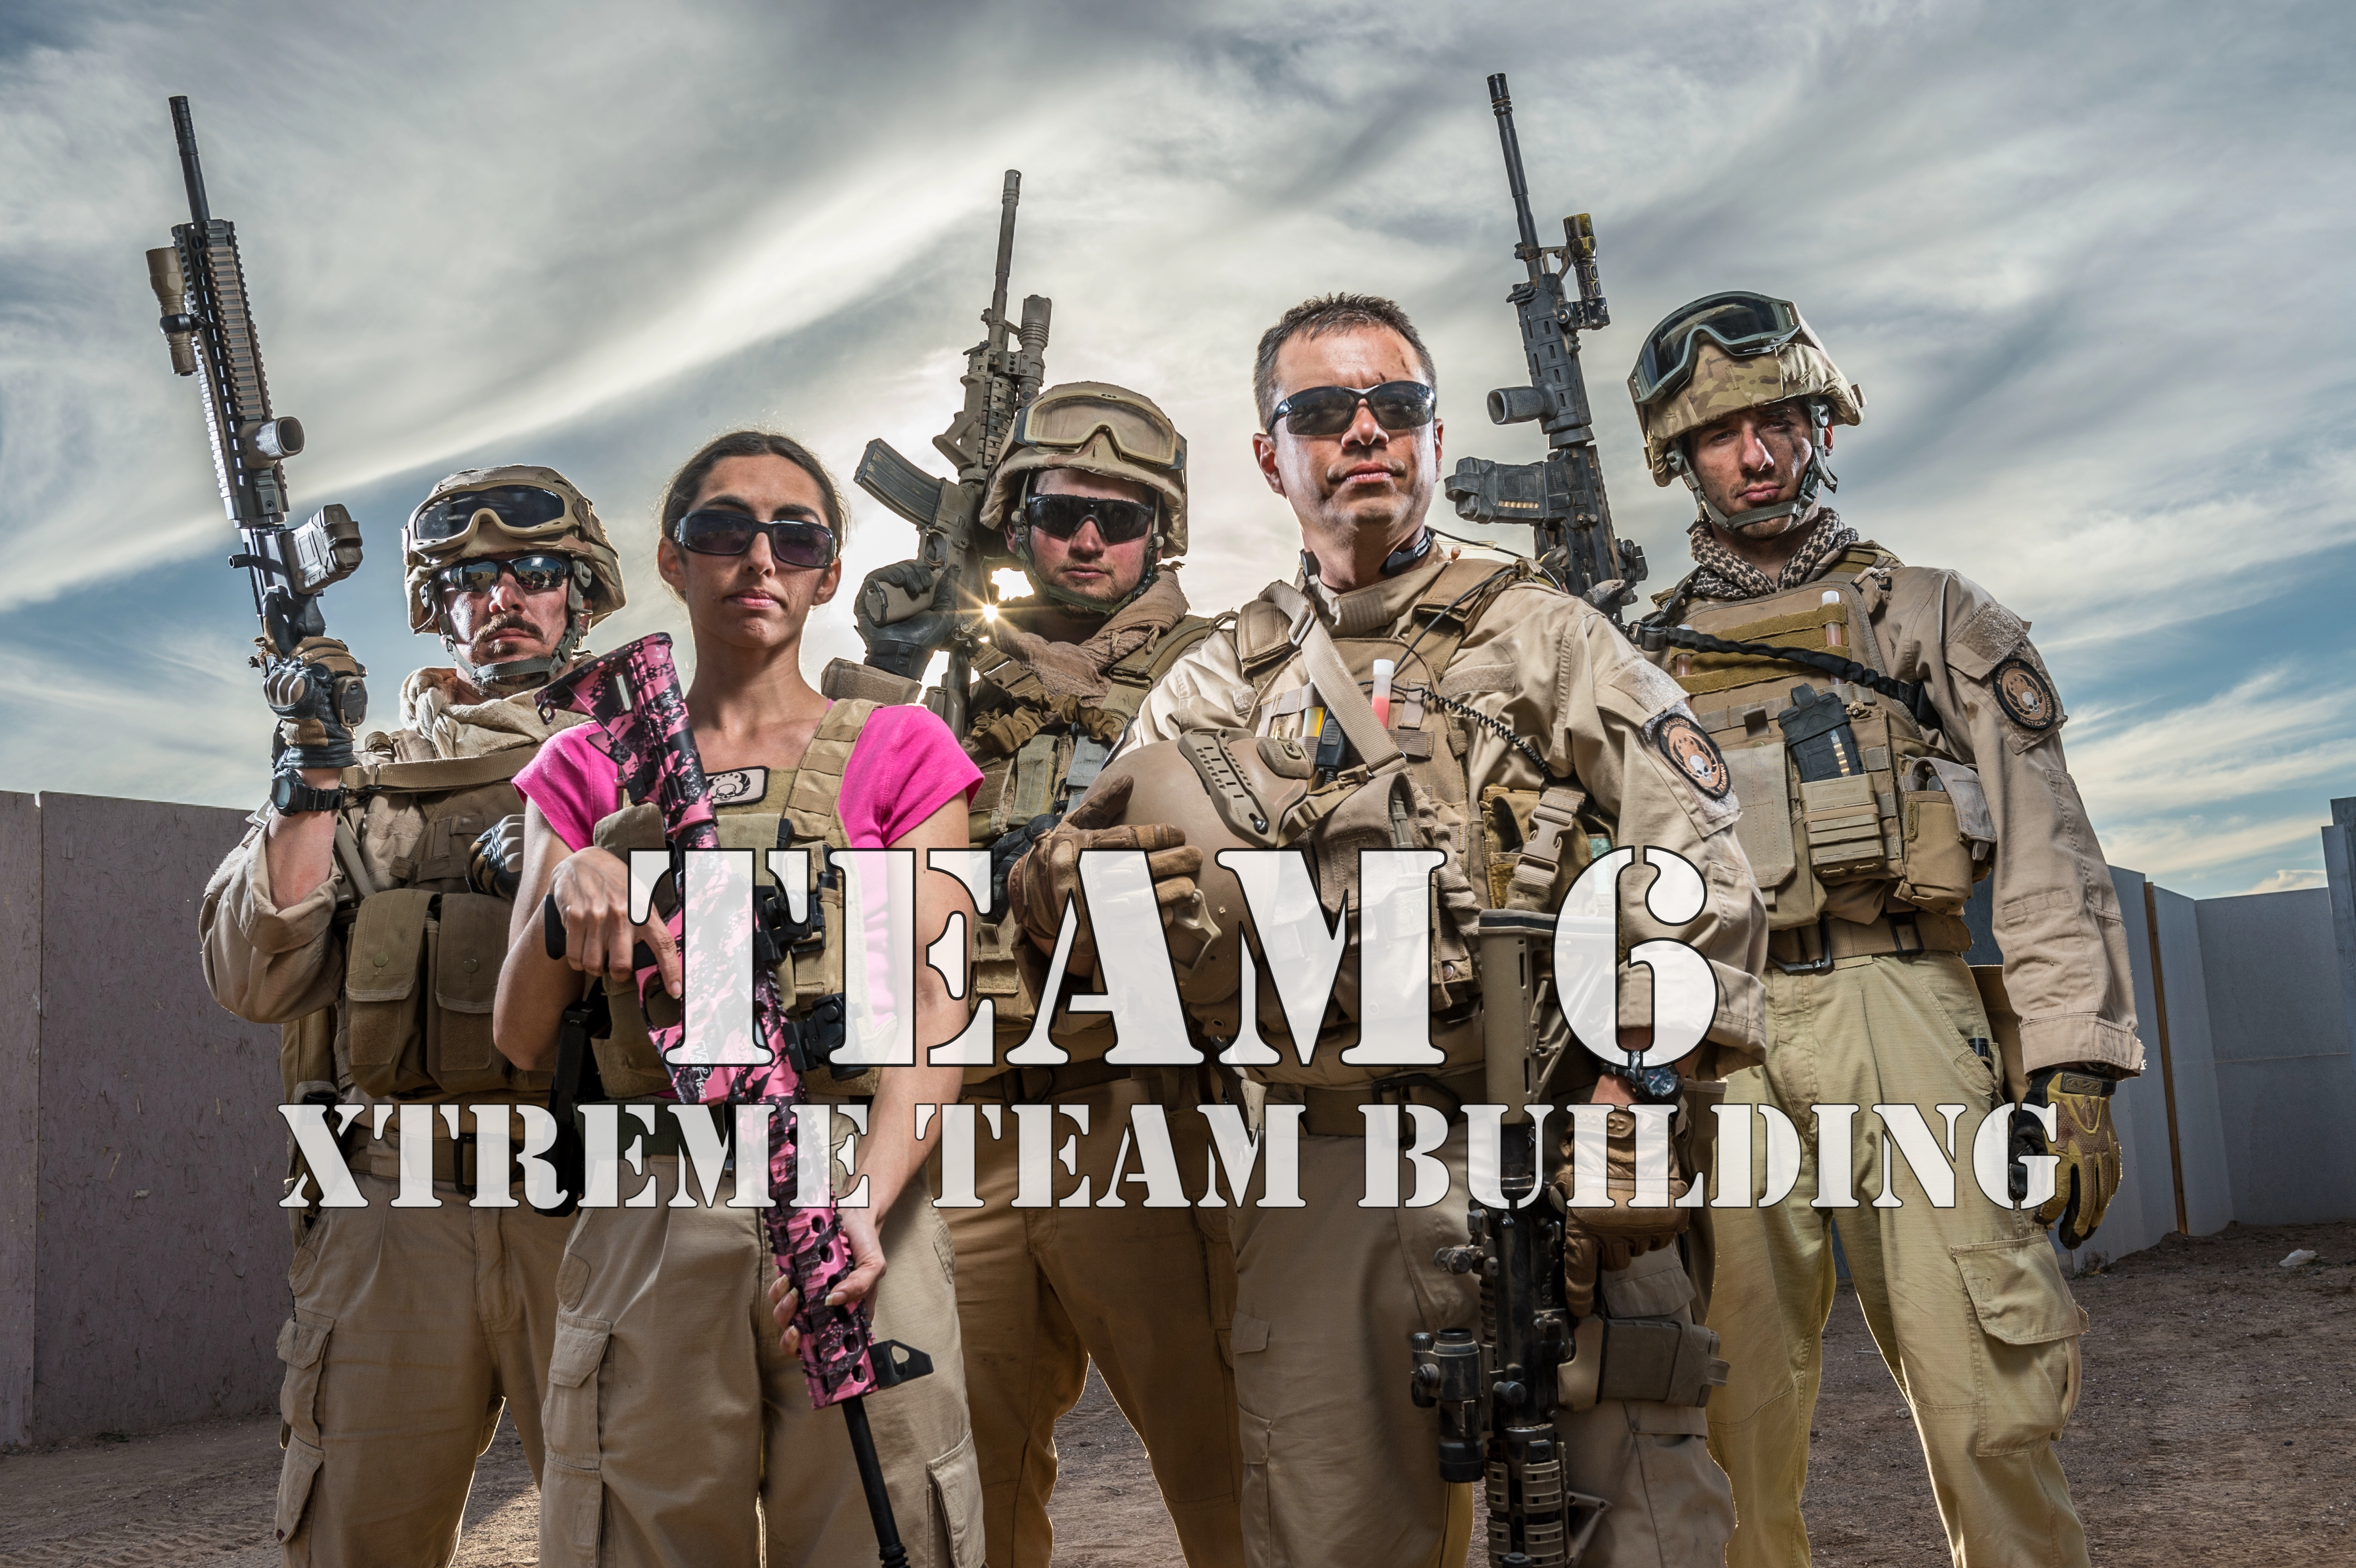 Adventure Team Building – the Fun Way to Success